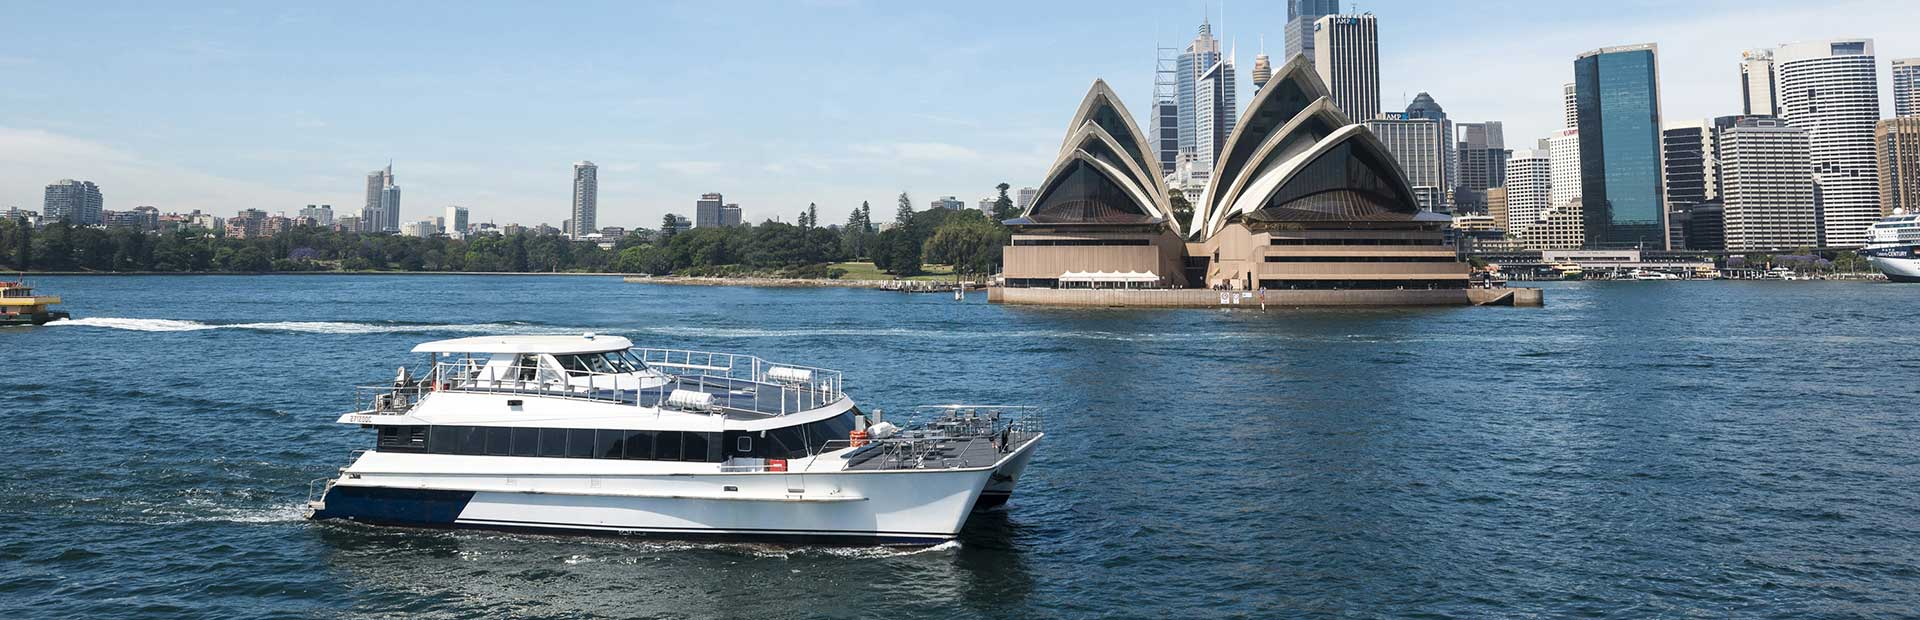 Sydney Harbour Cruise with Opera House